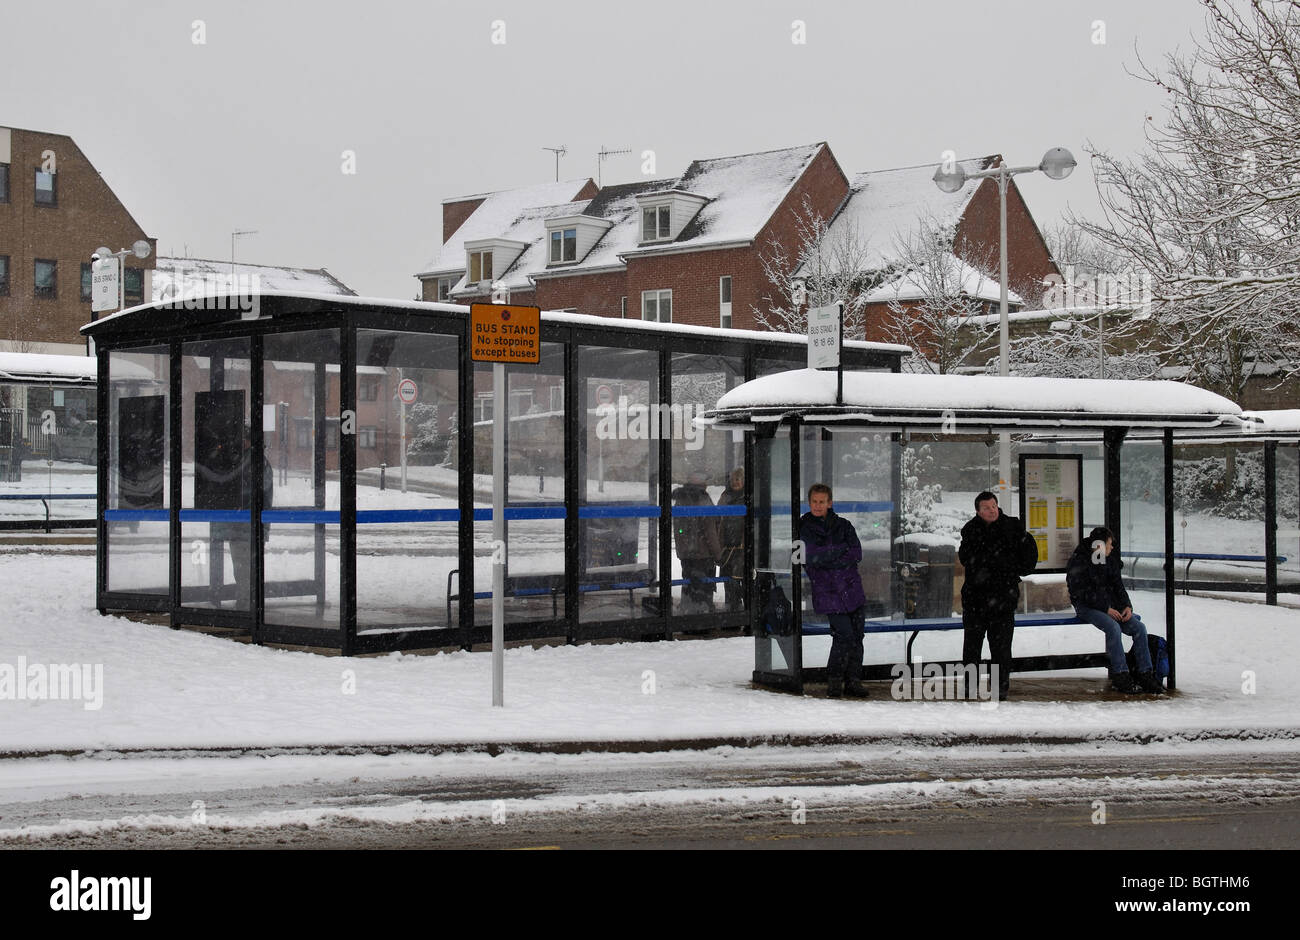 Bus shelters in snow, Warwick town centre, Warwickshire, UK - Stock Image